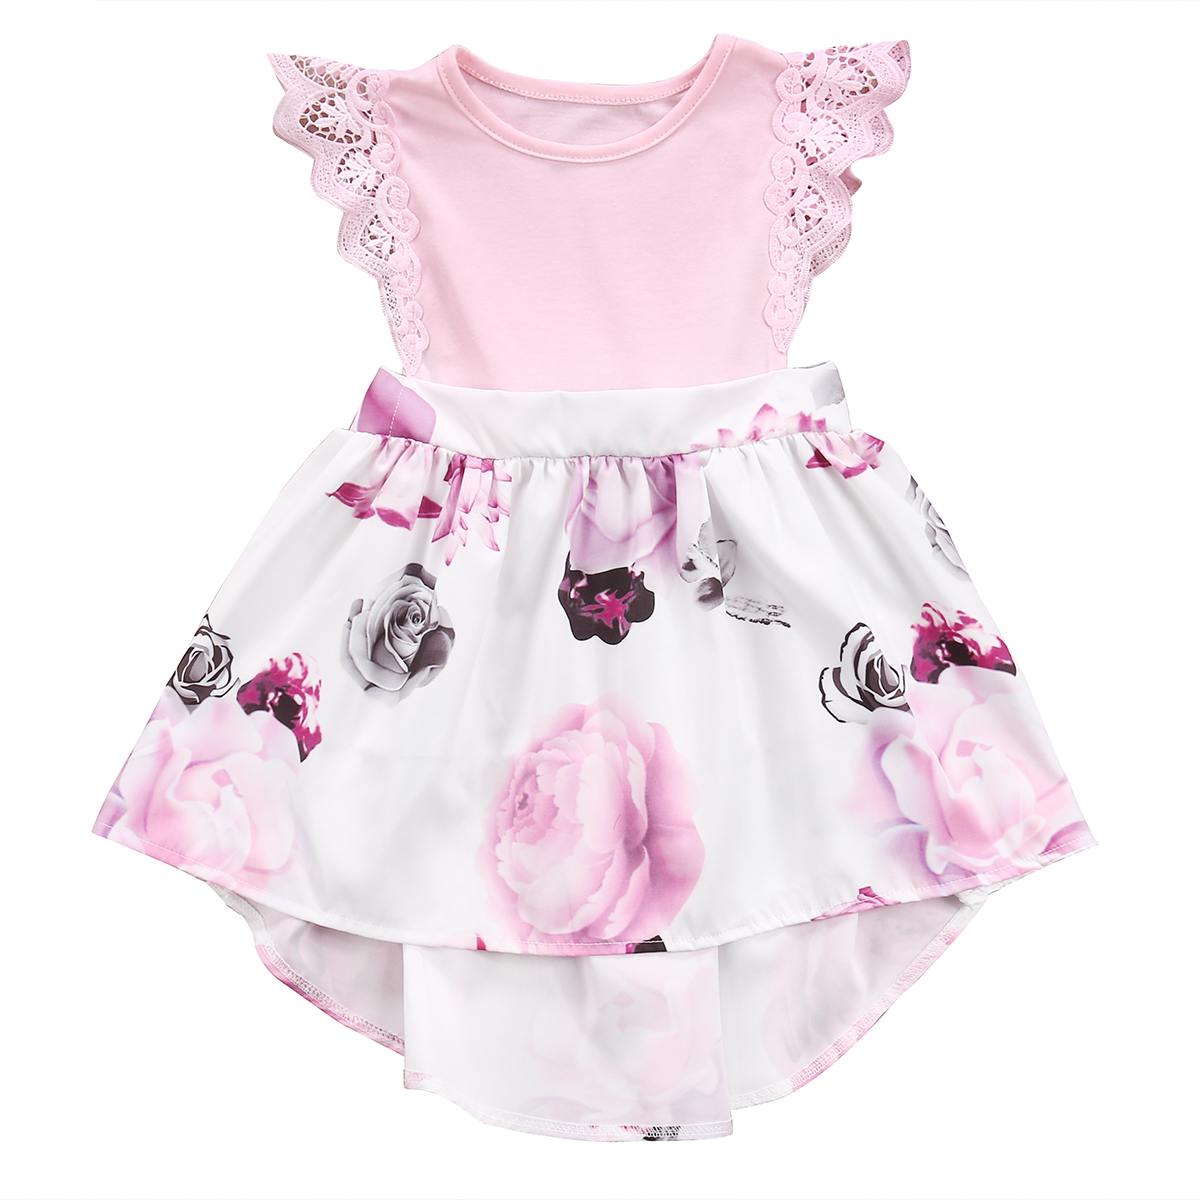 Toddler Kids Girls Clothing Dress Princess Flower Sleeveless Cute Tutu MIni Summer Sundress Party Dresses Girl flower kids baby girl clothing dress princess sleeveless ruffles tutu ball petal tulle party formal cute dresses girls